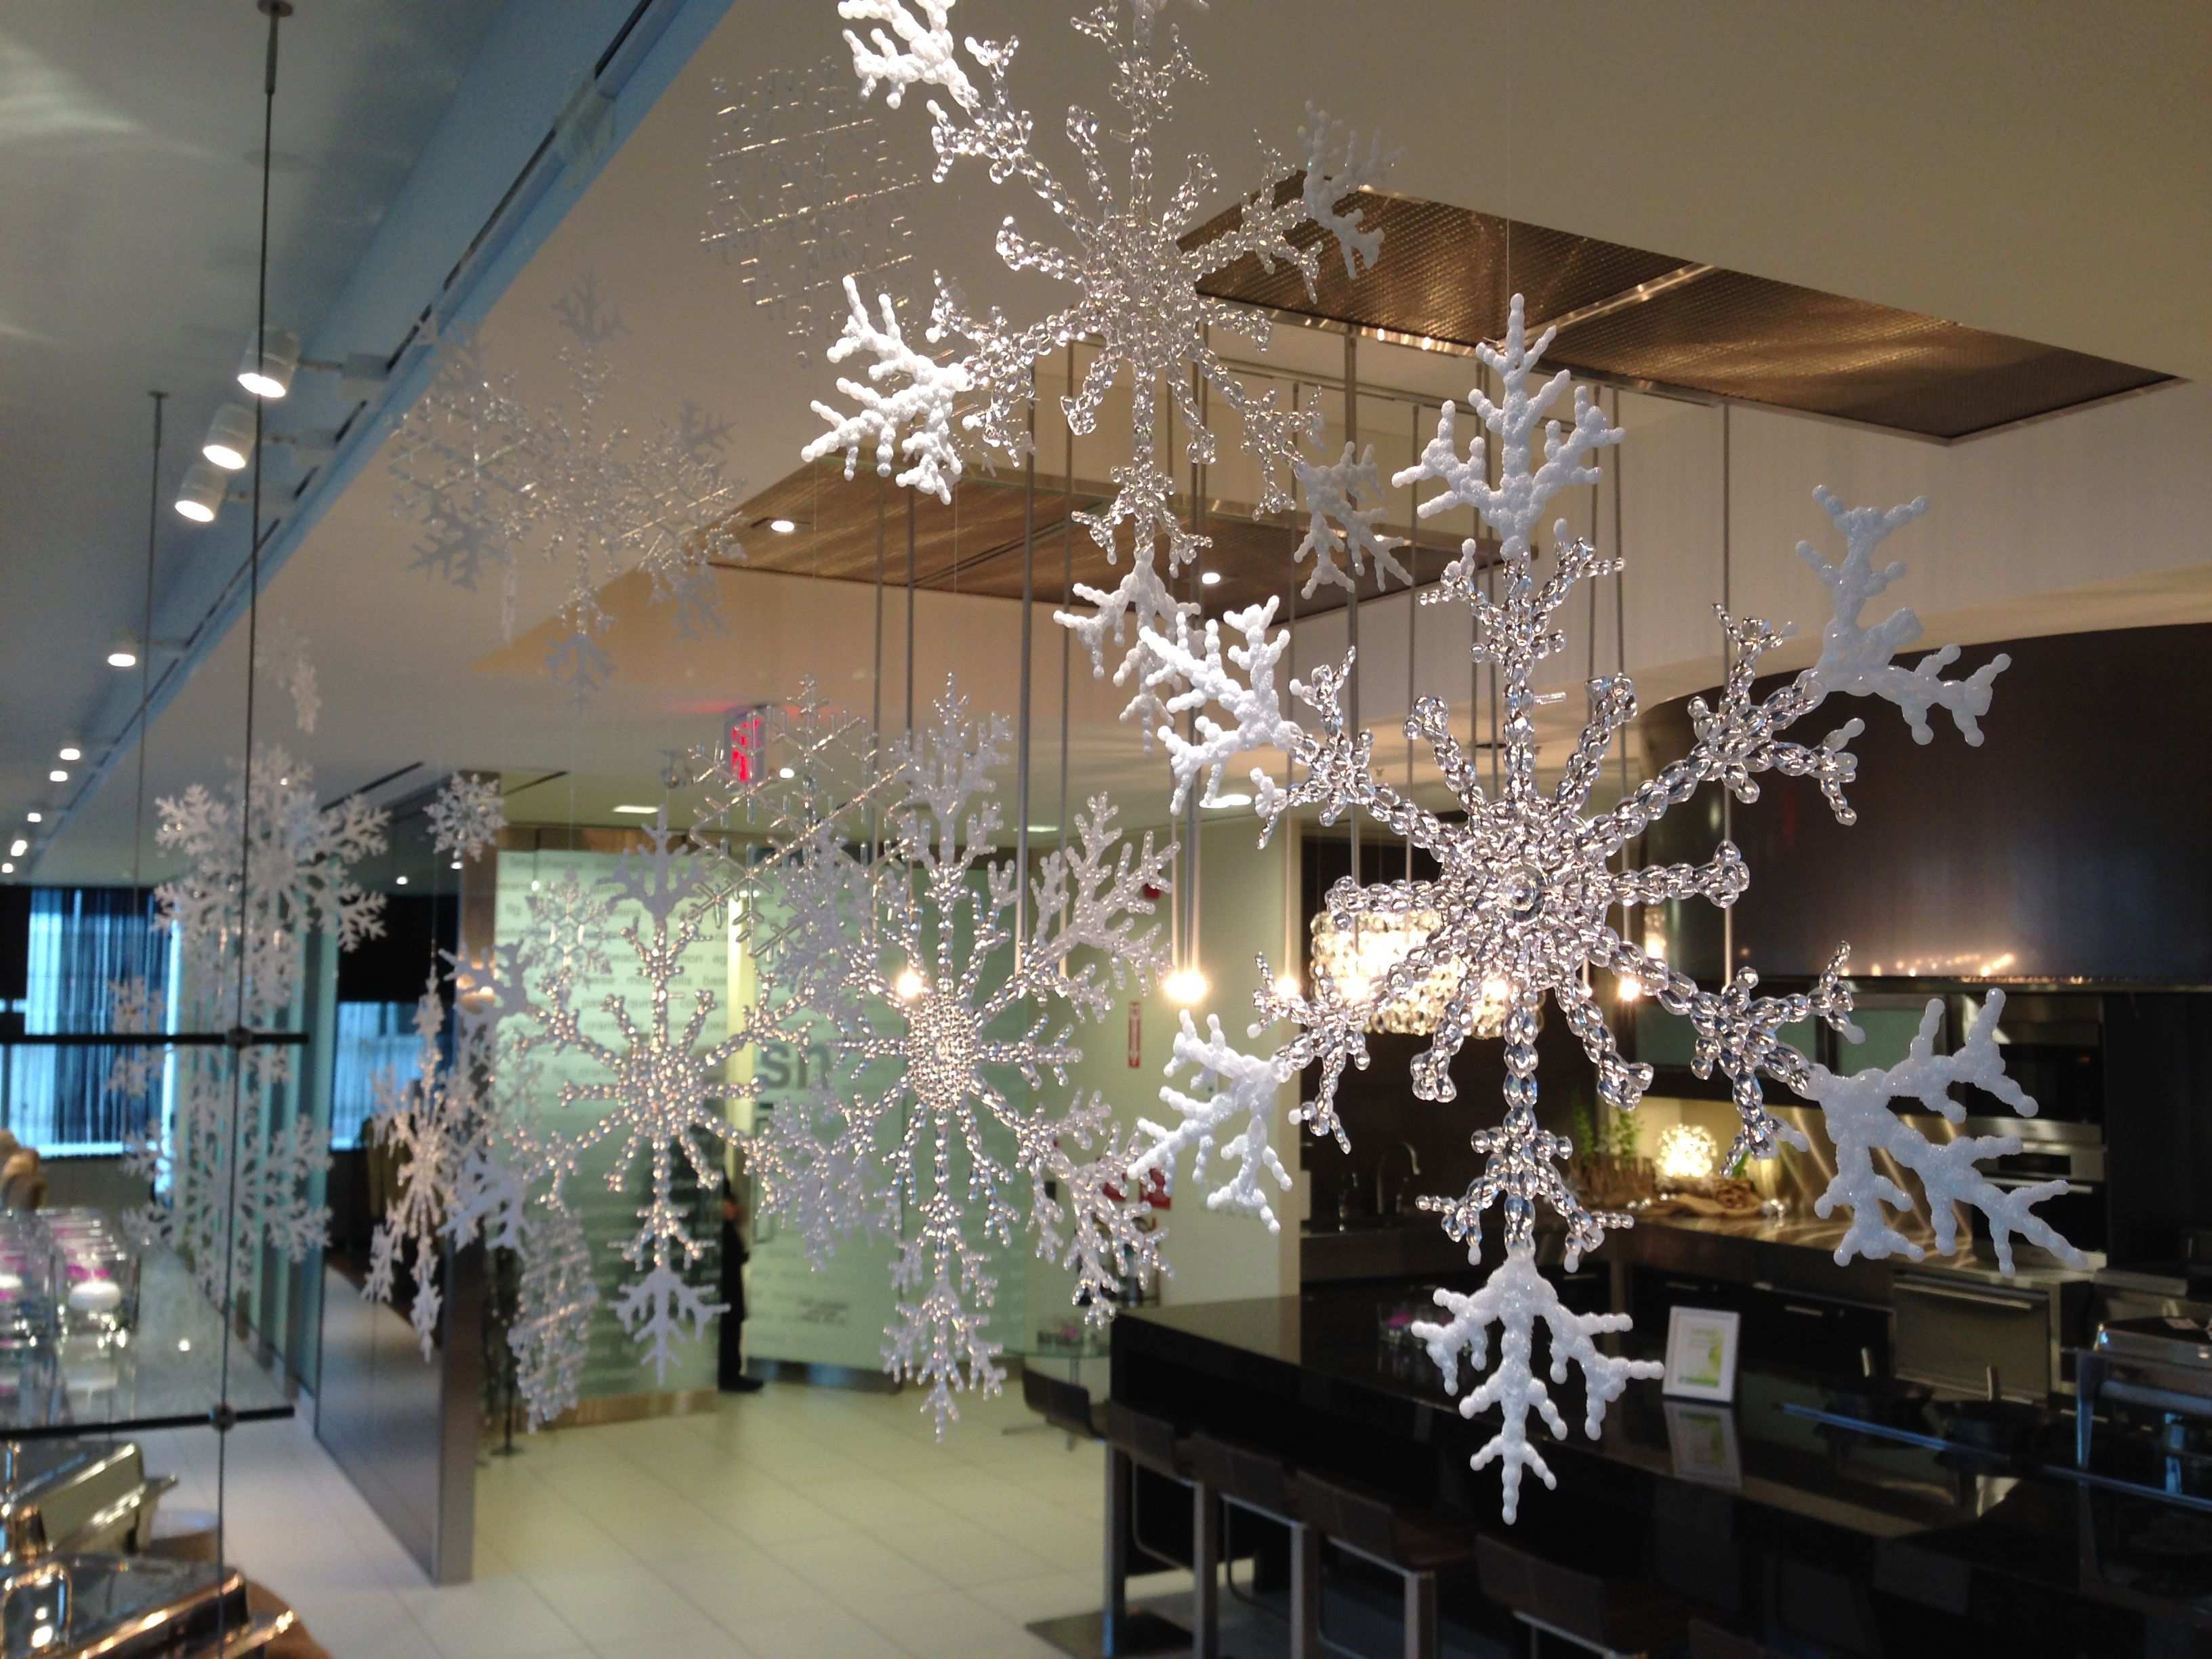 Hang Sized Snowflakes With Fishing Line